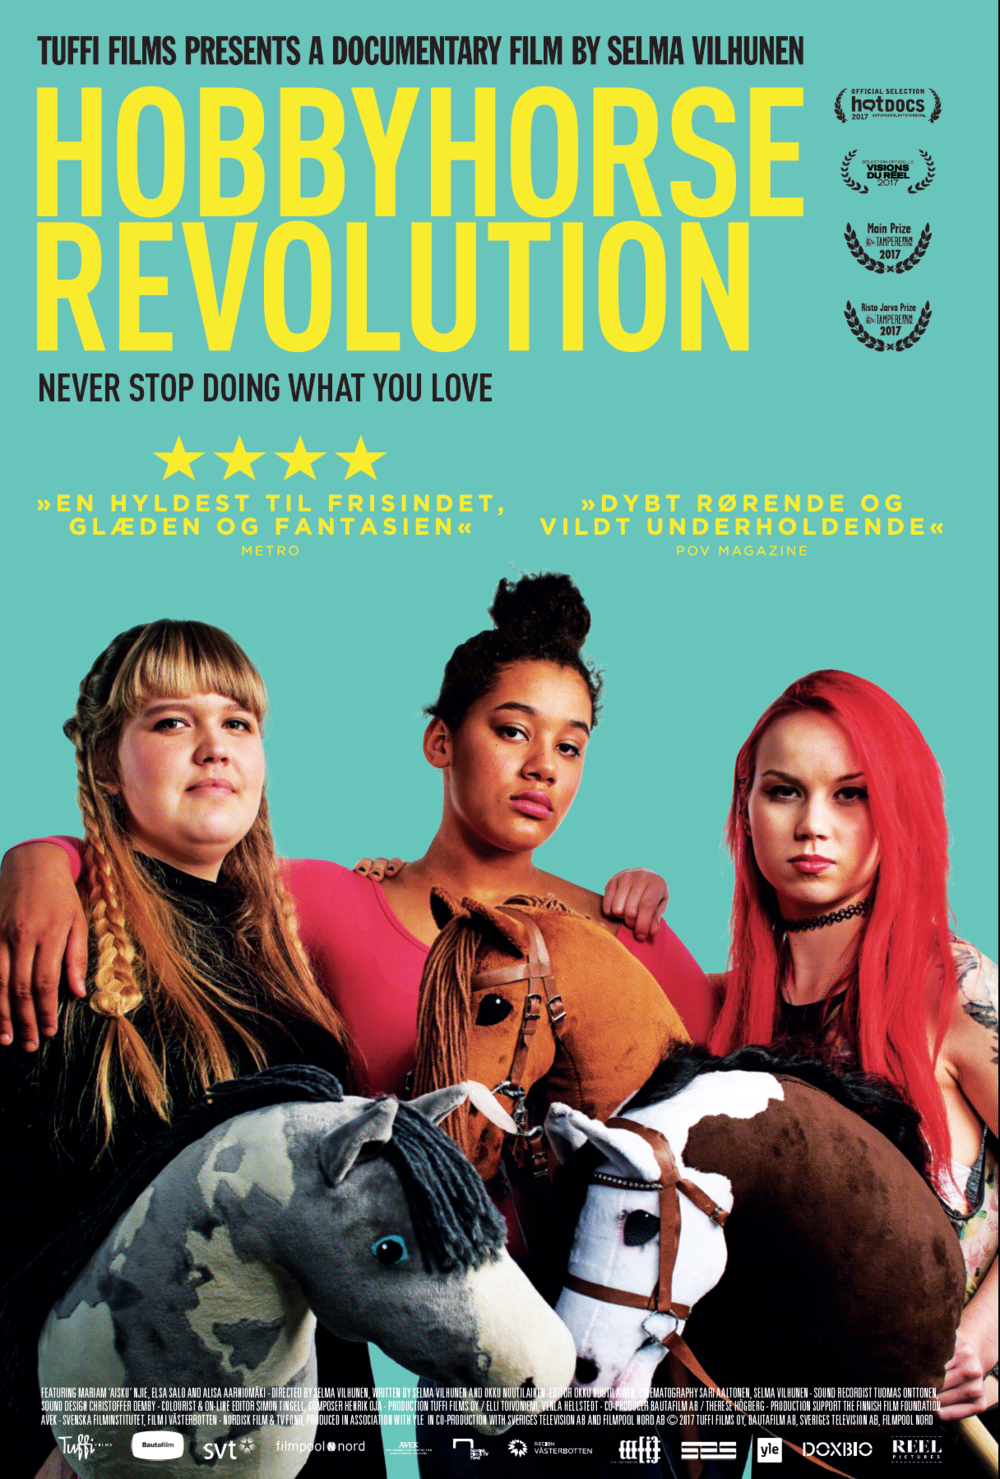 Movie poster for Hobbyhorse Revolution